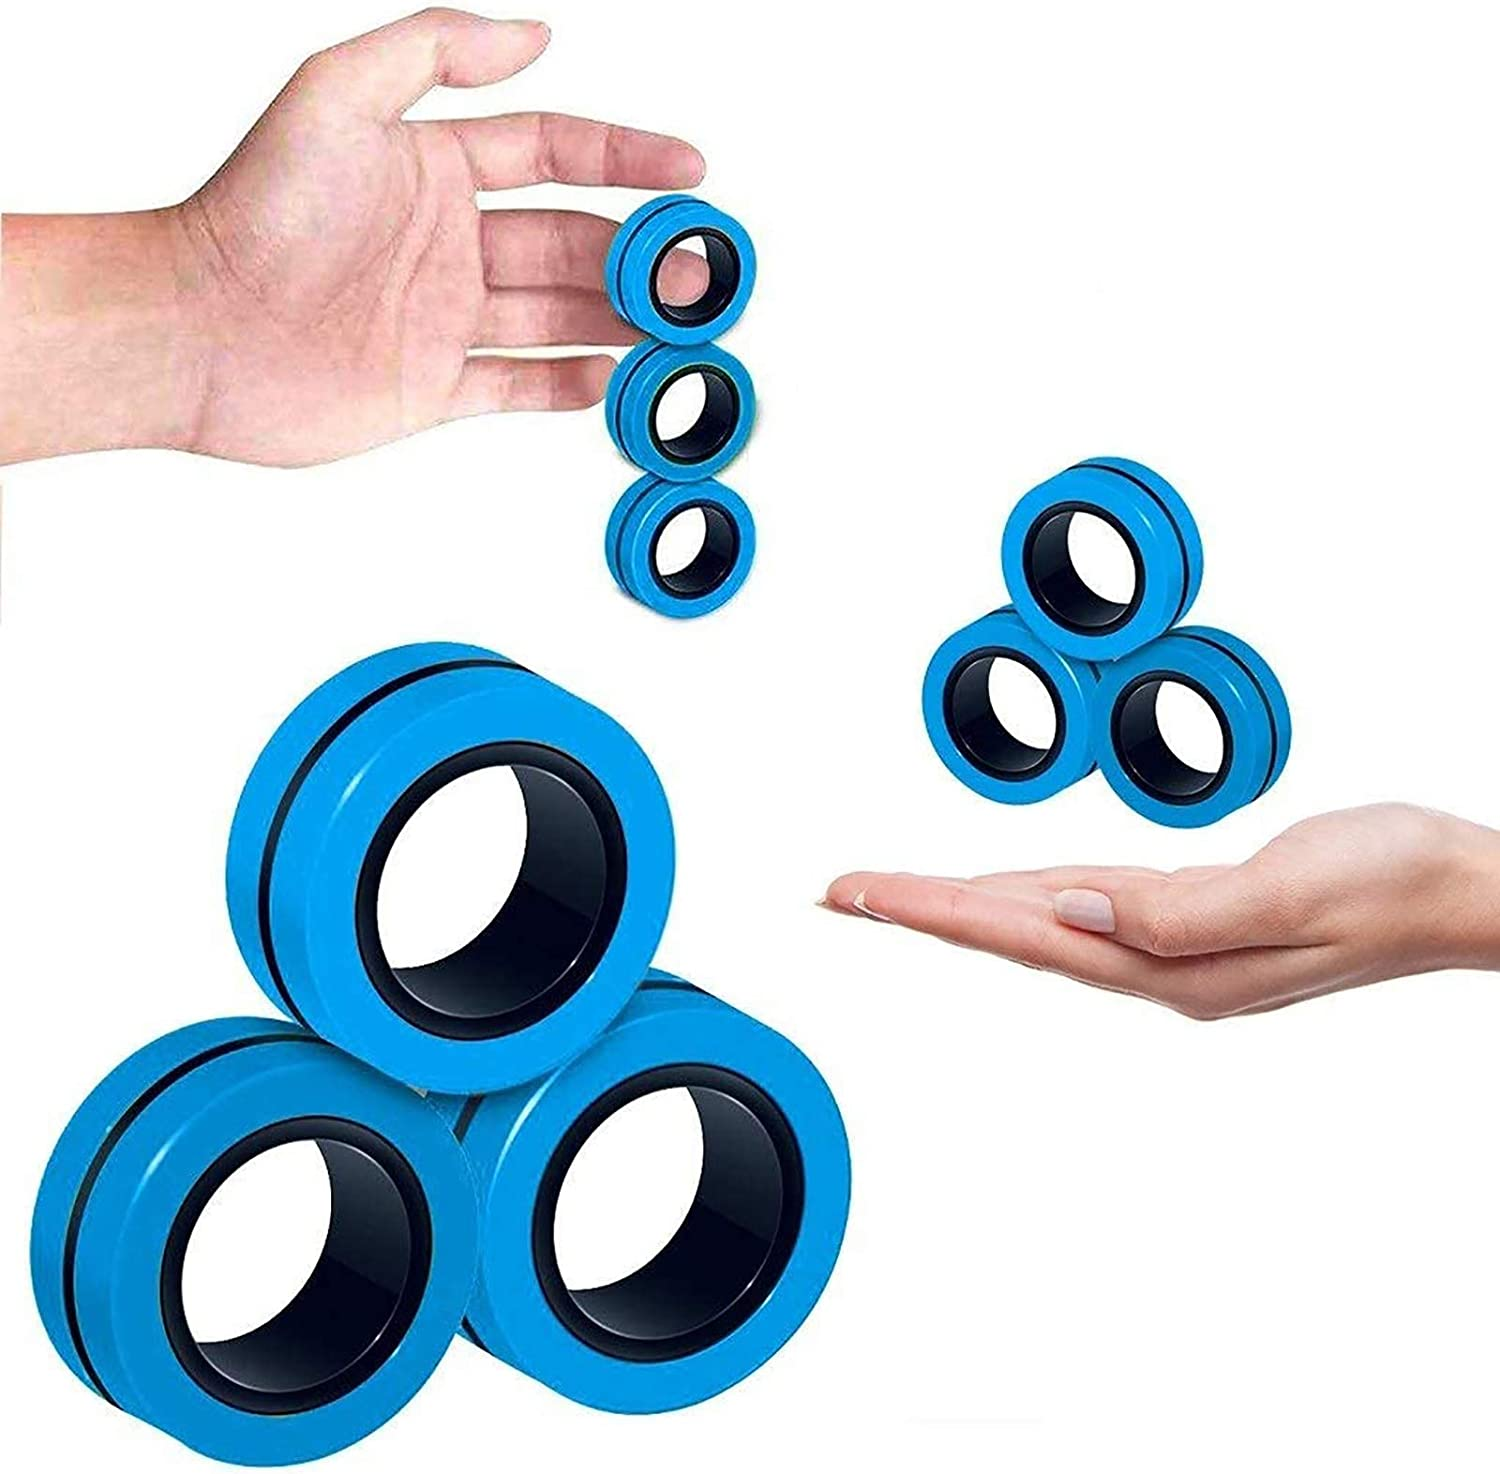 Amazon Com 3pcs Magnetic Finger Rings Fidget Toys Stress Anxiety Decompression Magical Ring Props Durable Unzip Hand Spinners Tools With Bearing Focus For Adults Children Toys Games